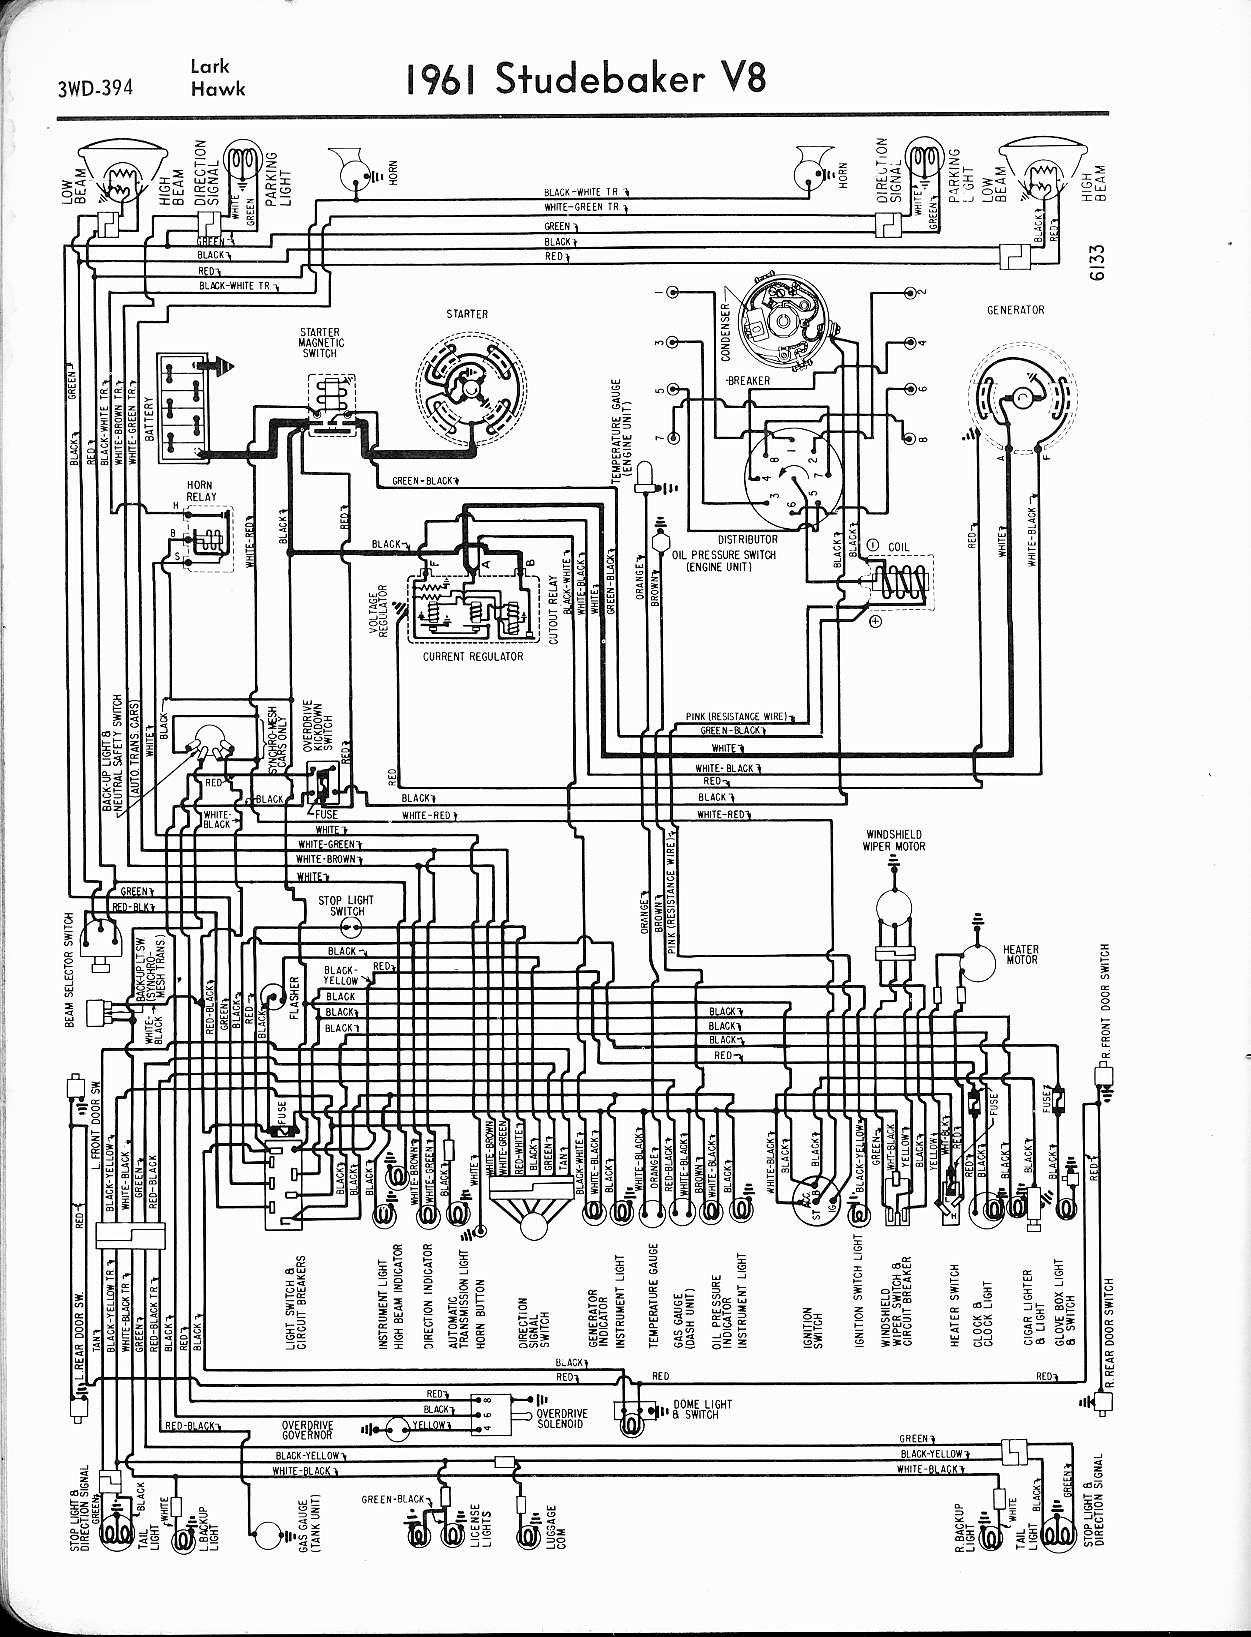 Avanti Car Wiring Diagrams - Diagram Schematic Ideas on old car accessories, old car chassis, old car electrical systems, old car spec sheets, old car brakes, old car engine, old auto diagrams, old car charging system, old car ignition, old car parts, old car battery, old car blueprints, old car schematics,